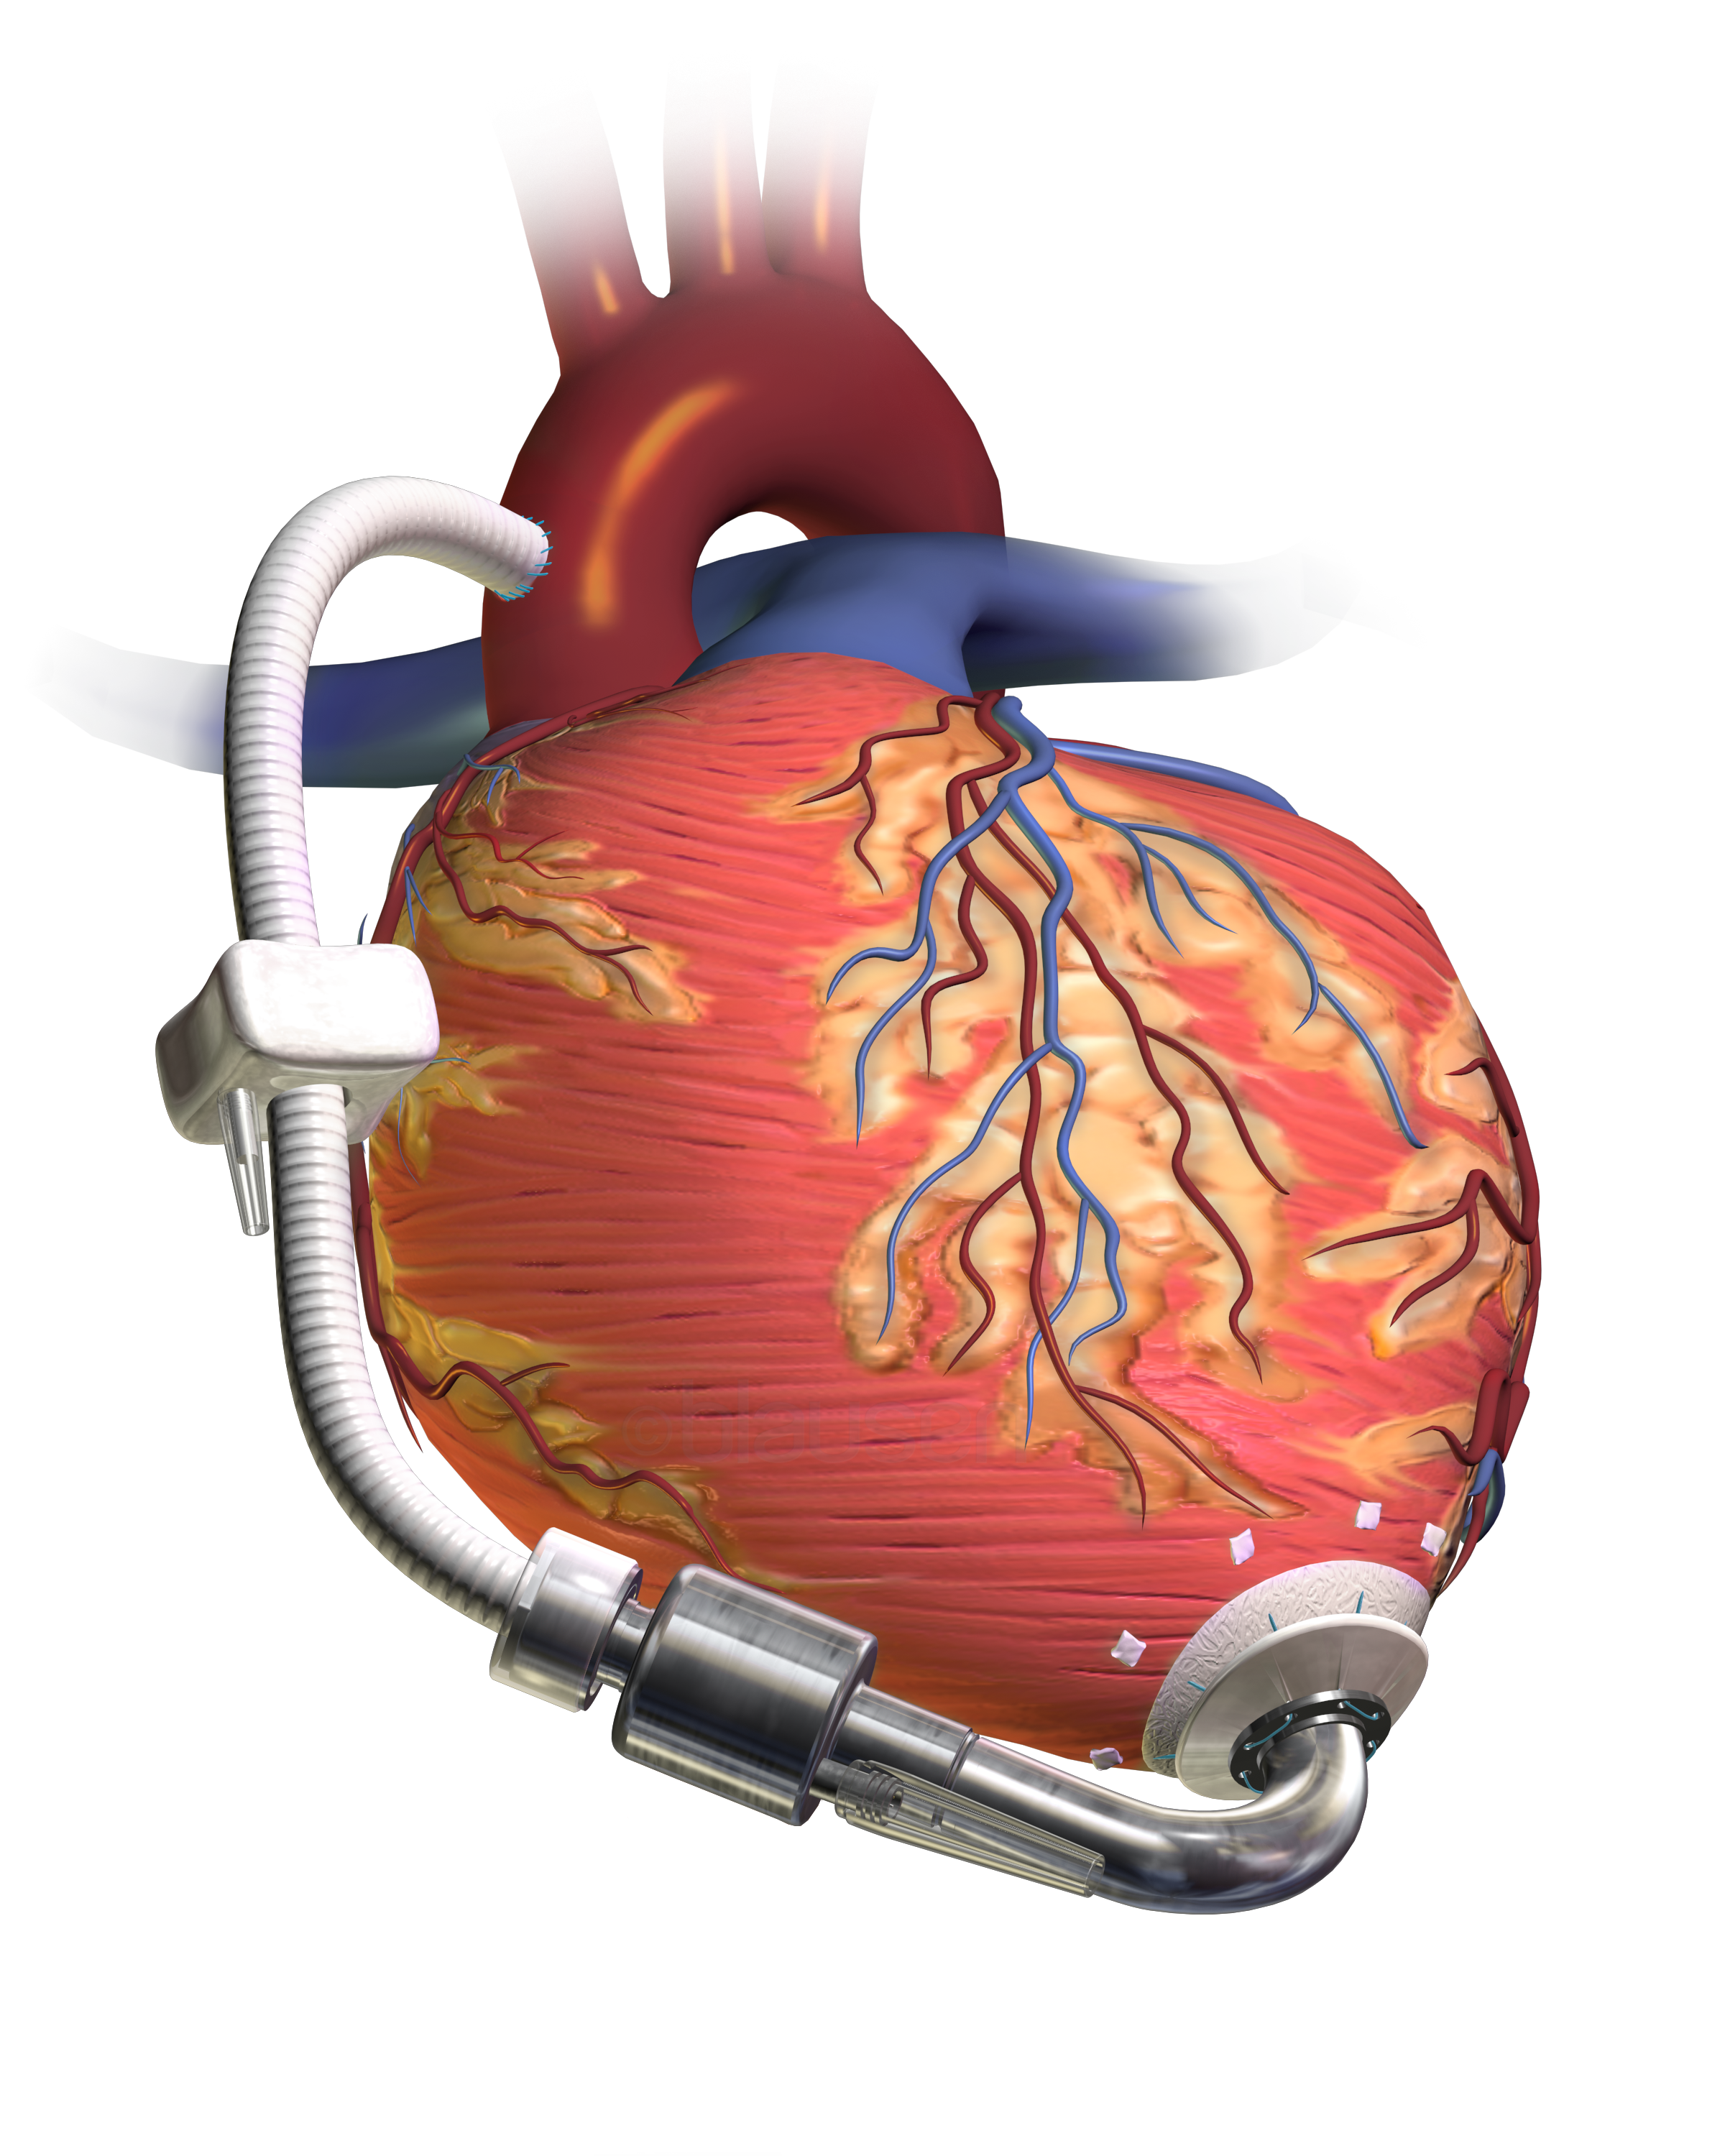 Cardiovascular devices and Instruments Photo